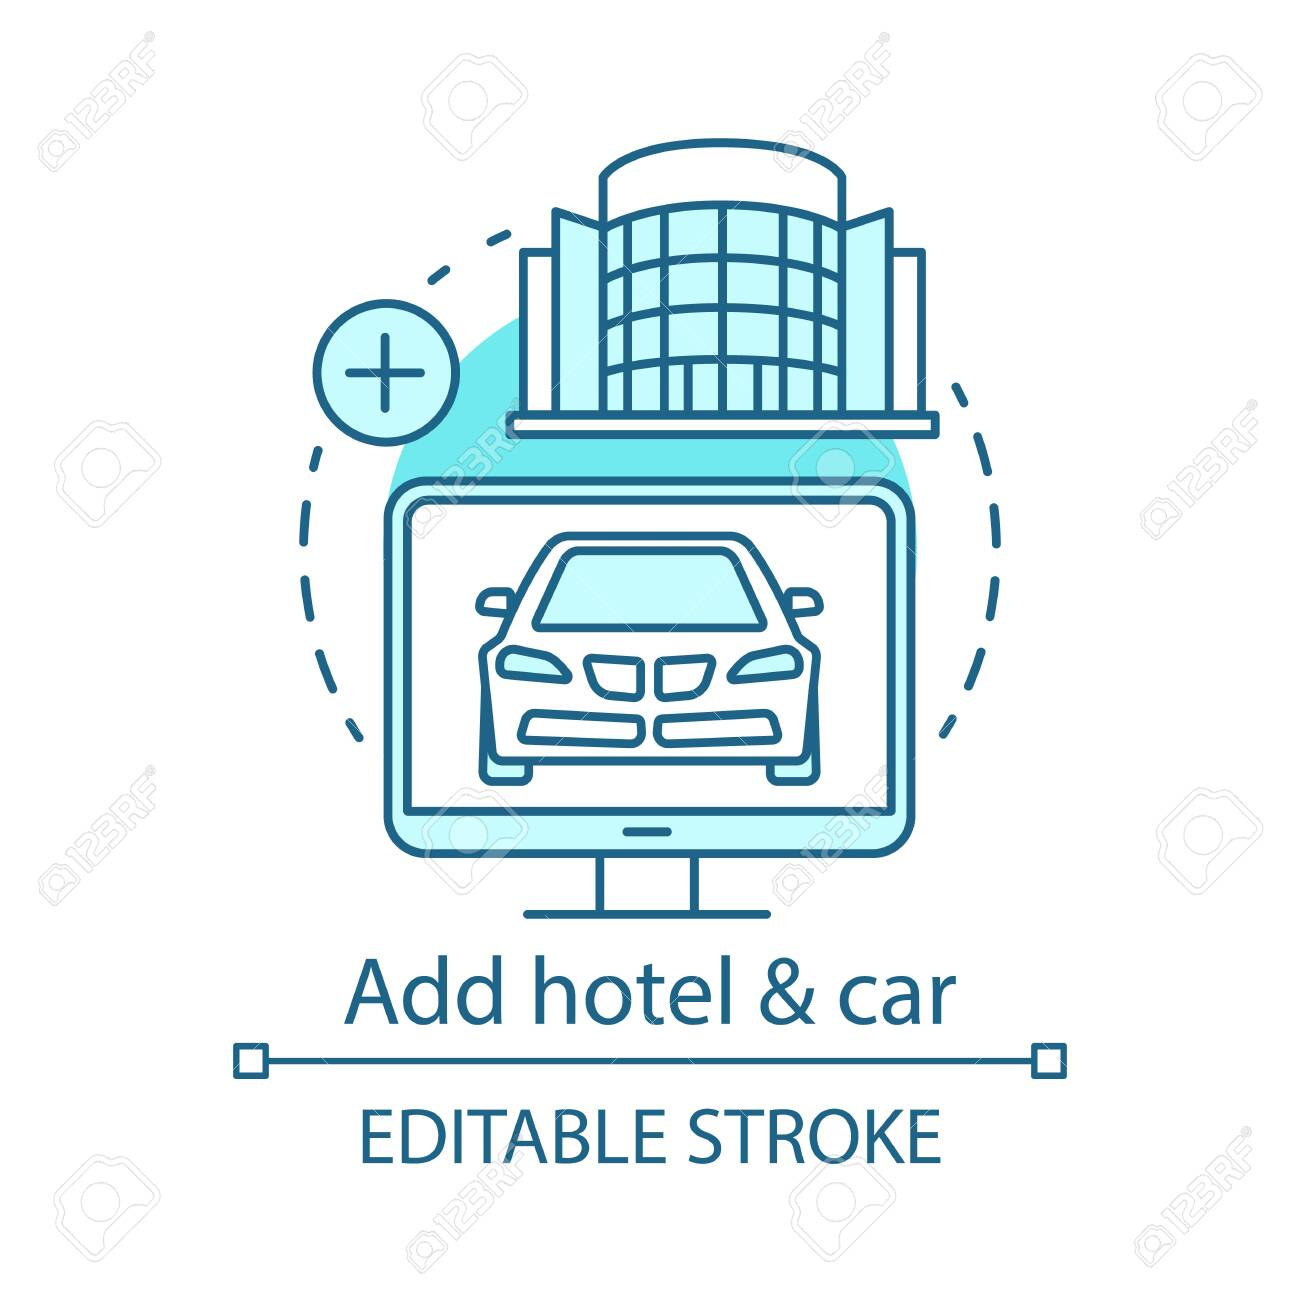 Add Hotel And Car Concept Icon Vacation Options Idea Thin Line Royalty Free Cliparts Vectors And Stock Illustration Image 128922484